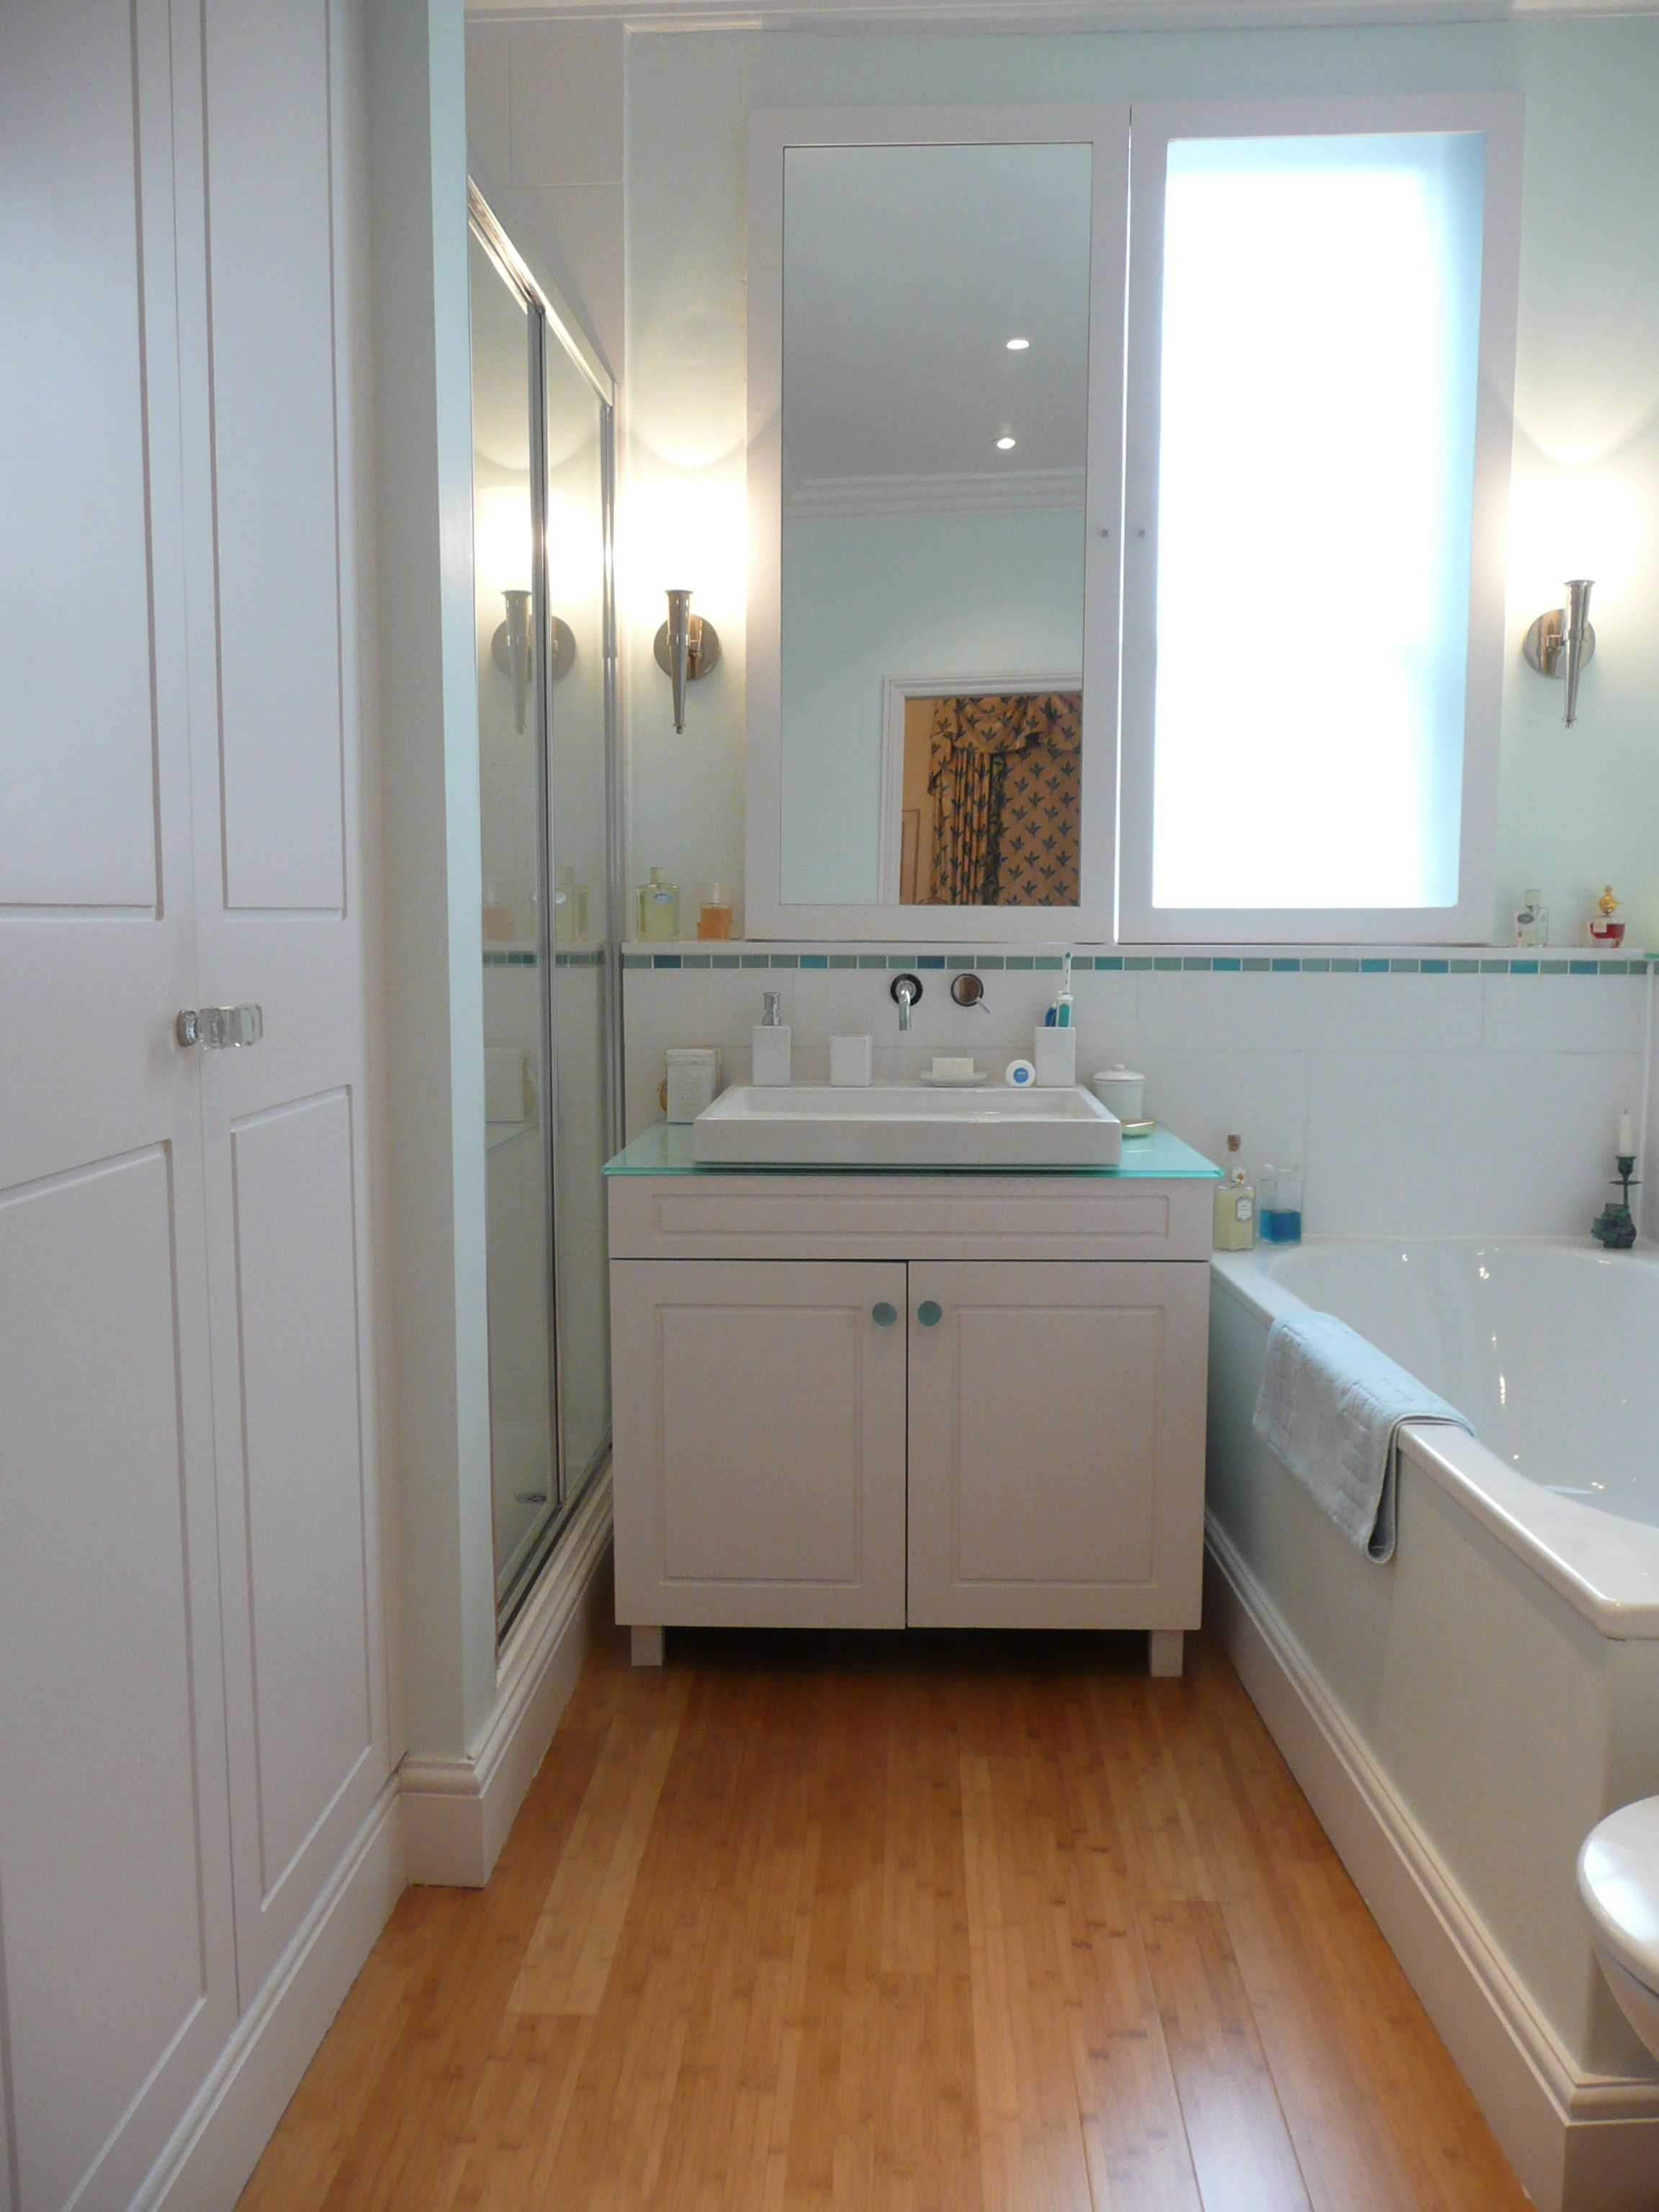 bamboo flooring in bathroom, i think i like that color too ...